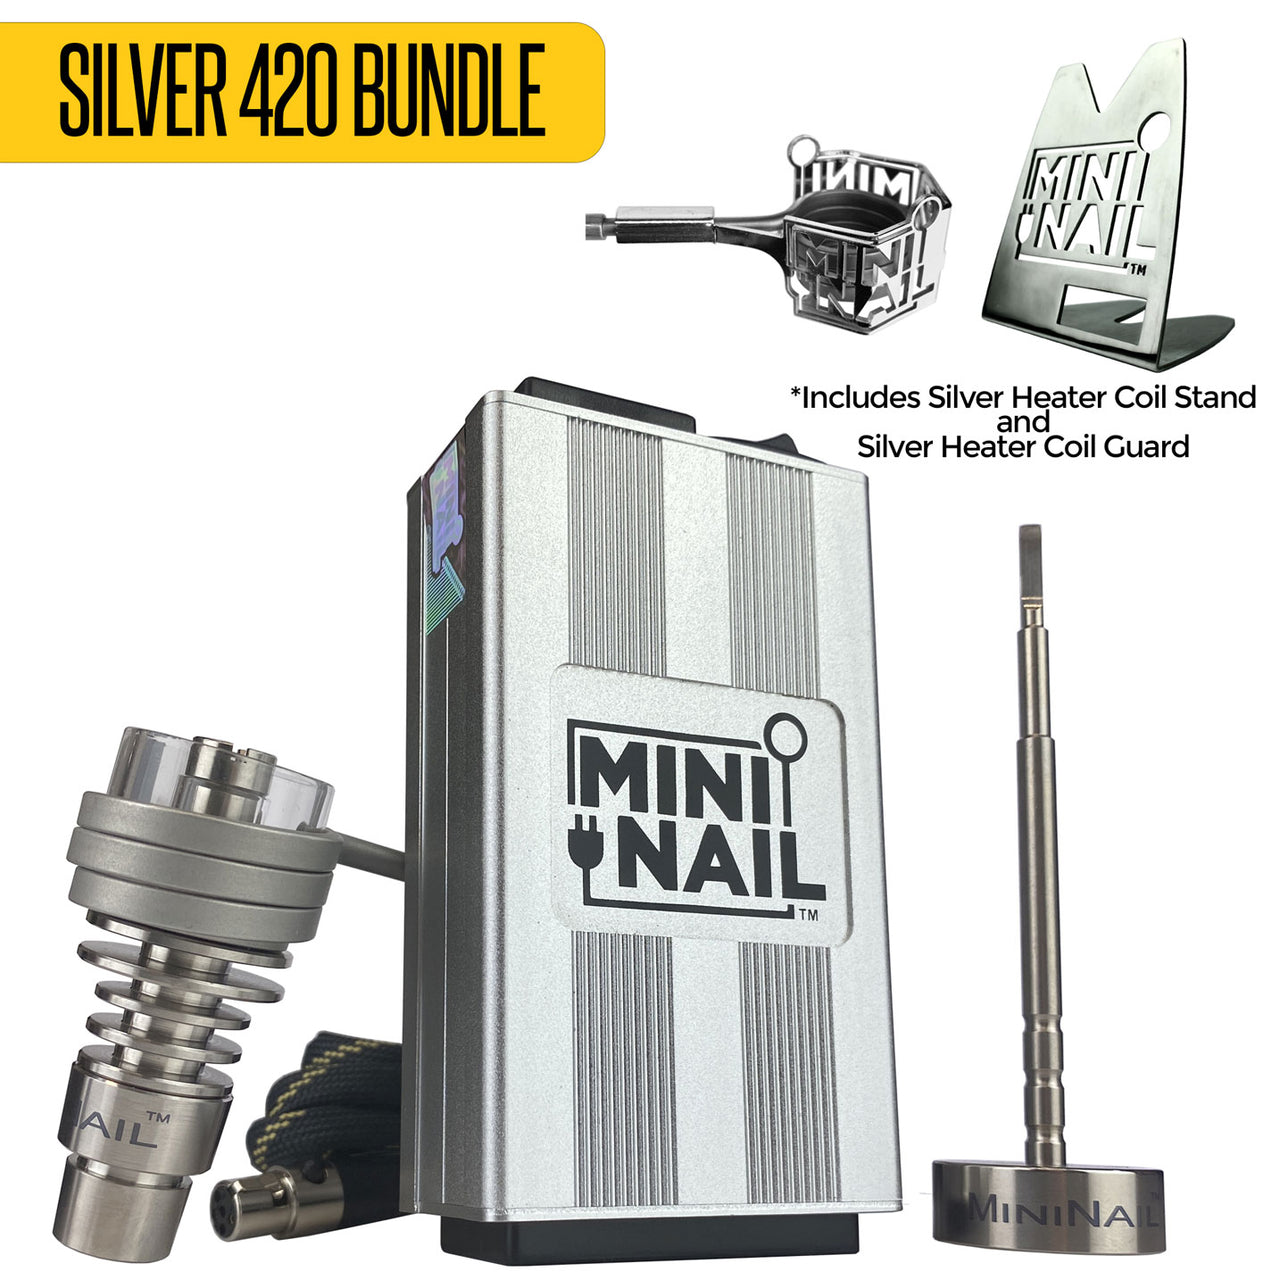 Silver 420 Bundle | Quartz Hybrid DeepDish Complete Enail Kit + Accessories